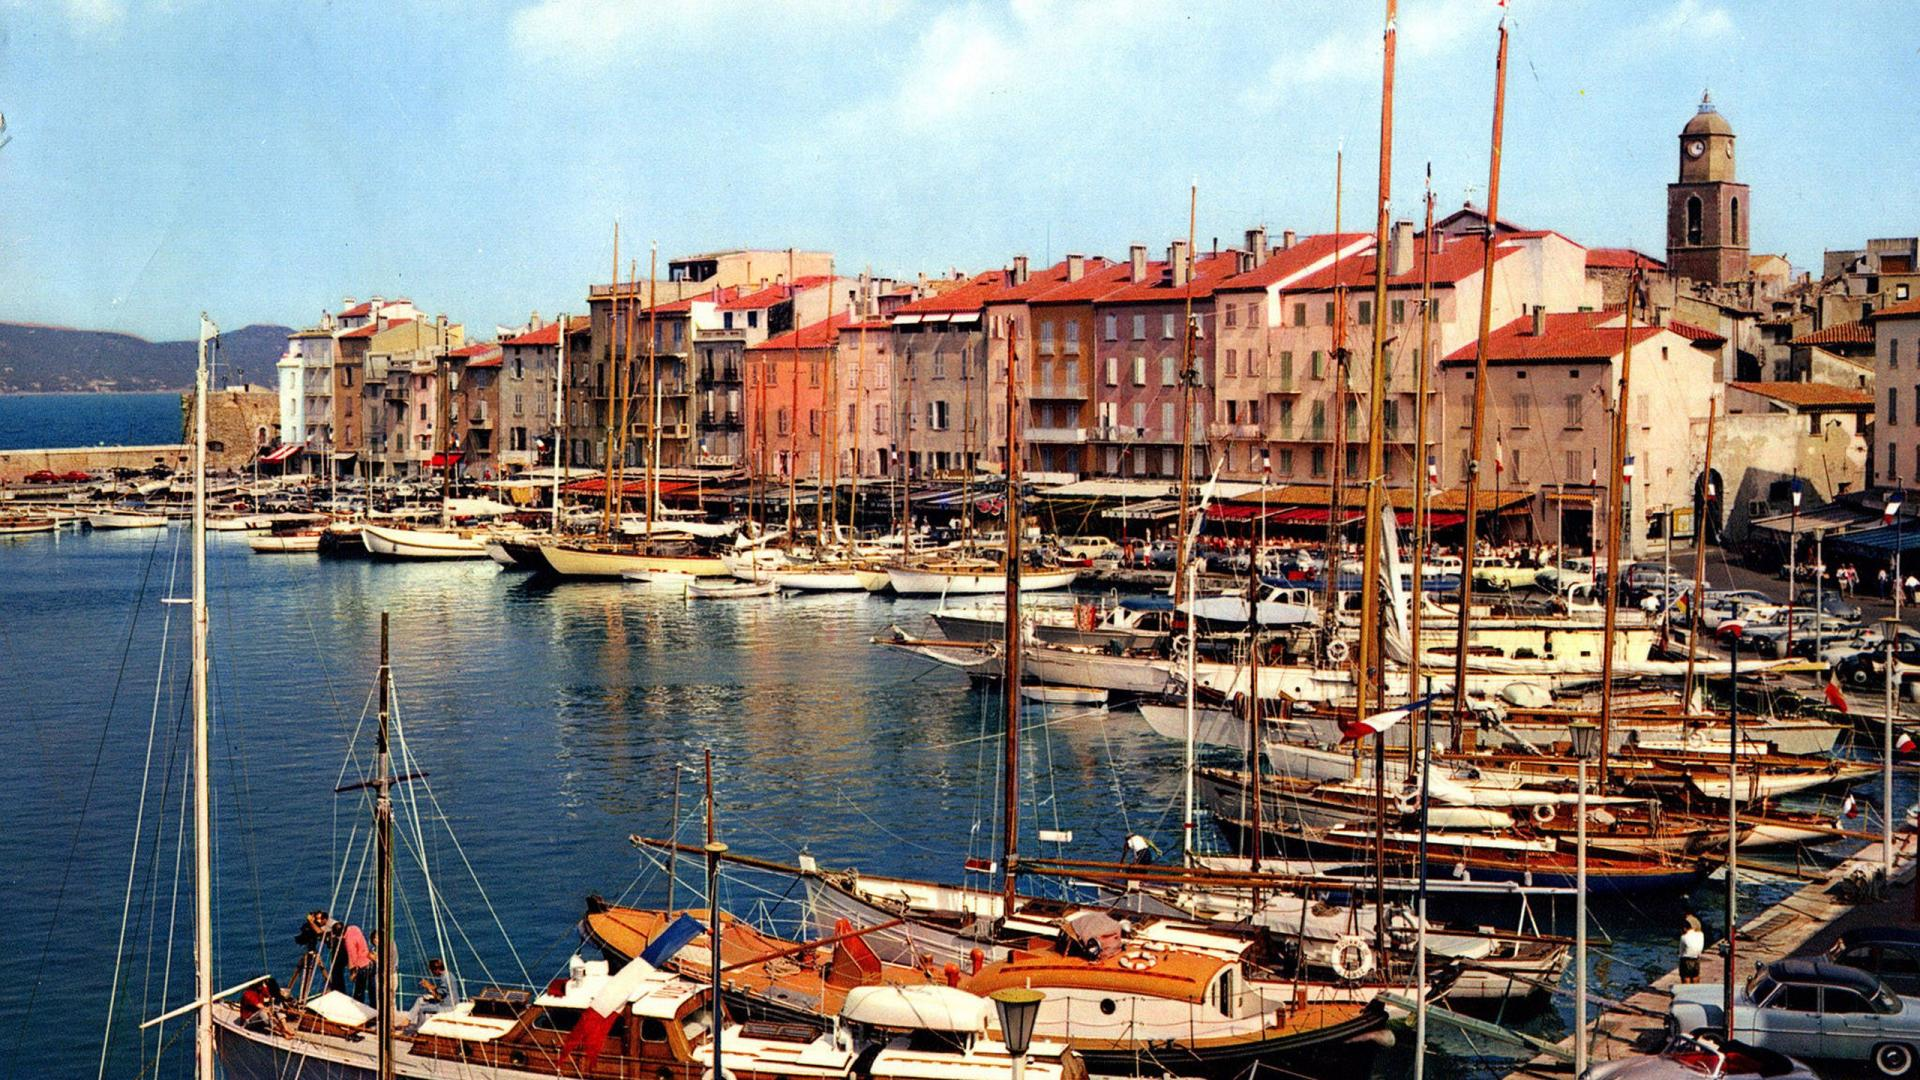 harbor-marina-in-st-tropez-france-296575.jpg